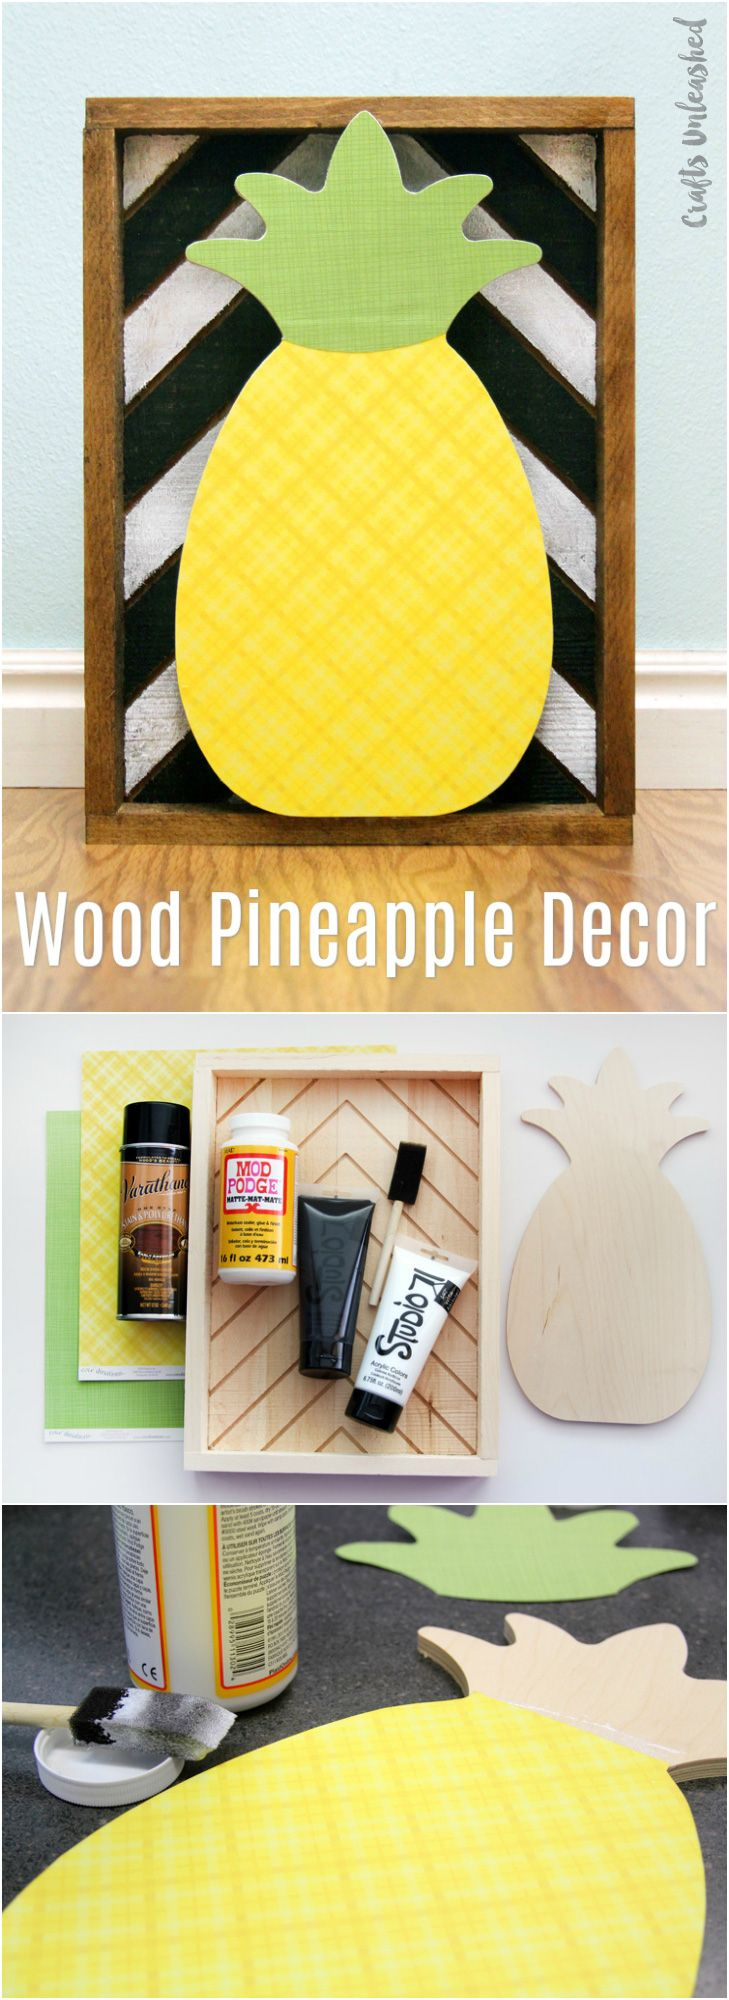 258 best Home Decor images on Pinterest | Bag, Craft rooms and Craft ...